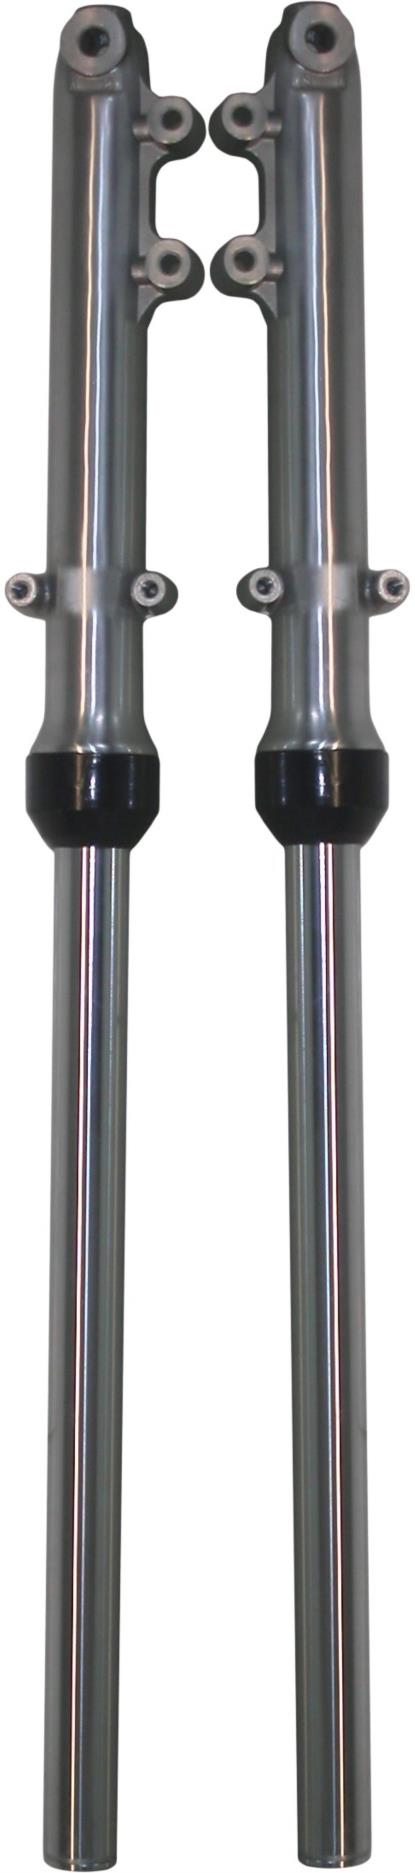 Picture of Front Forks Suzuki GN125 (Stanchion Size 32mm) (Pair)